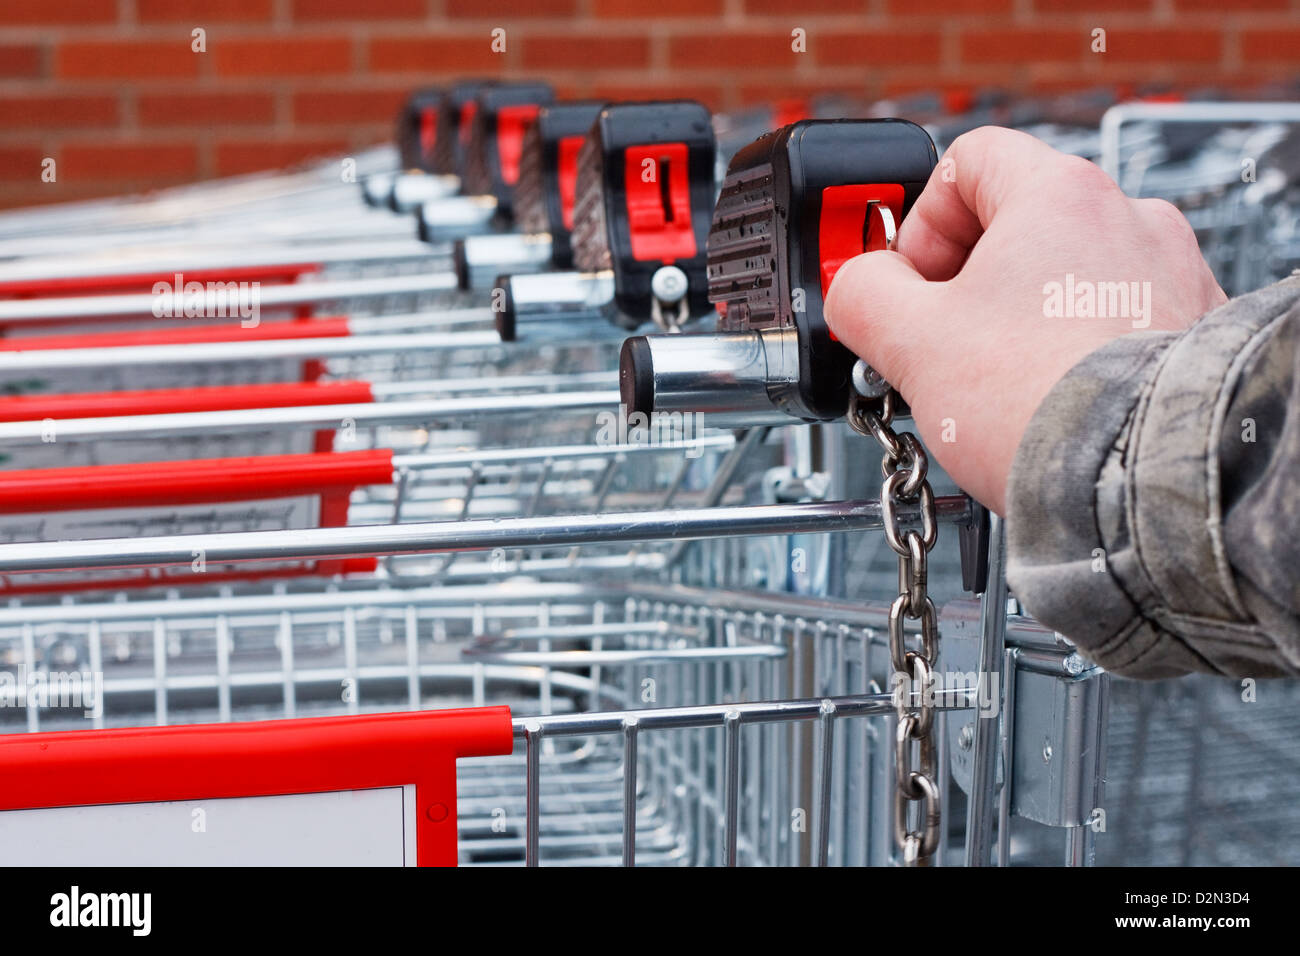 Inserting coin or token into shopping cart at the superstore - Stock Image